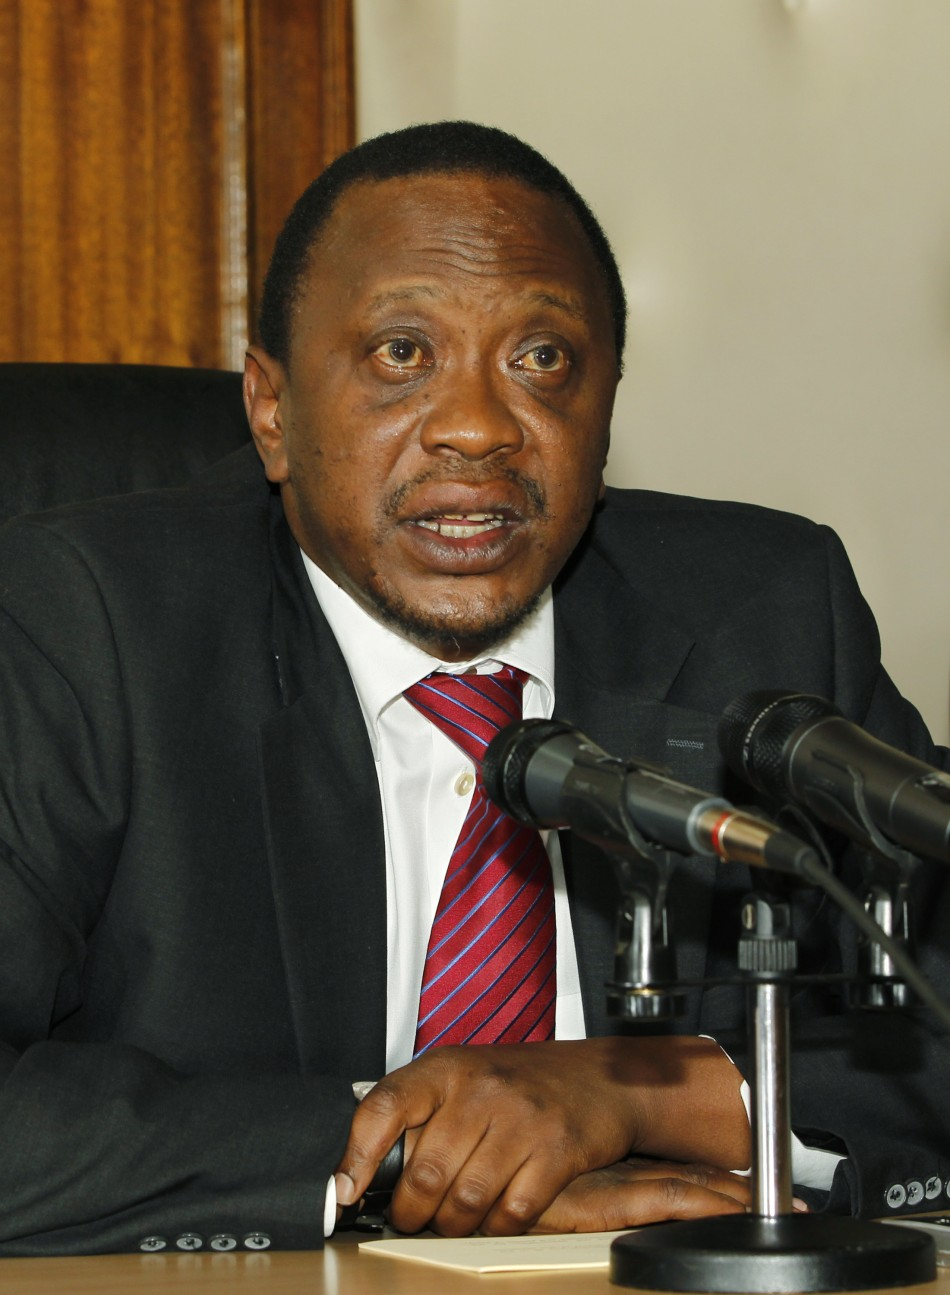 Kenyas finance minister Kenyatta addresses a news conference in his office in the capital Nairobi